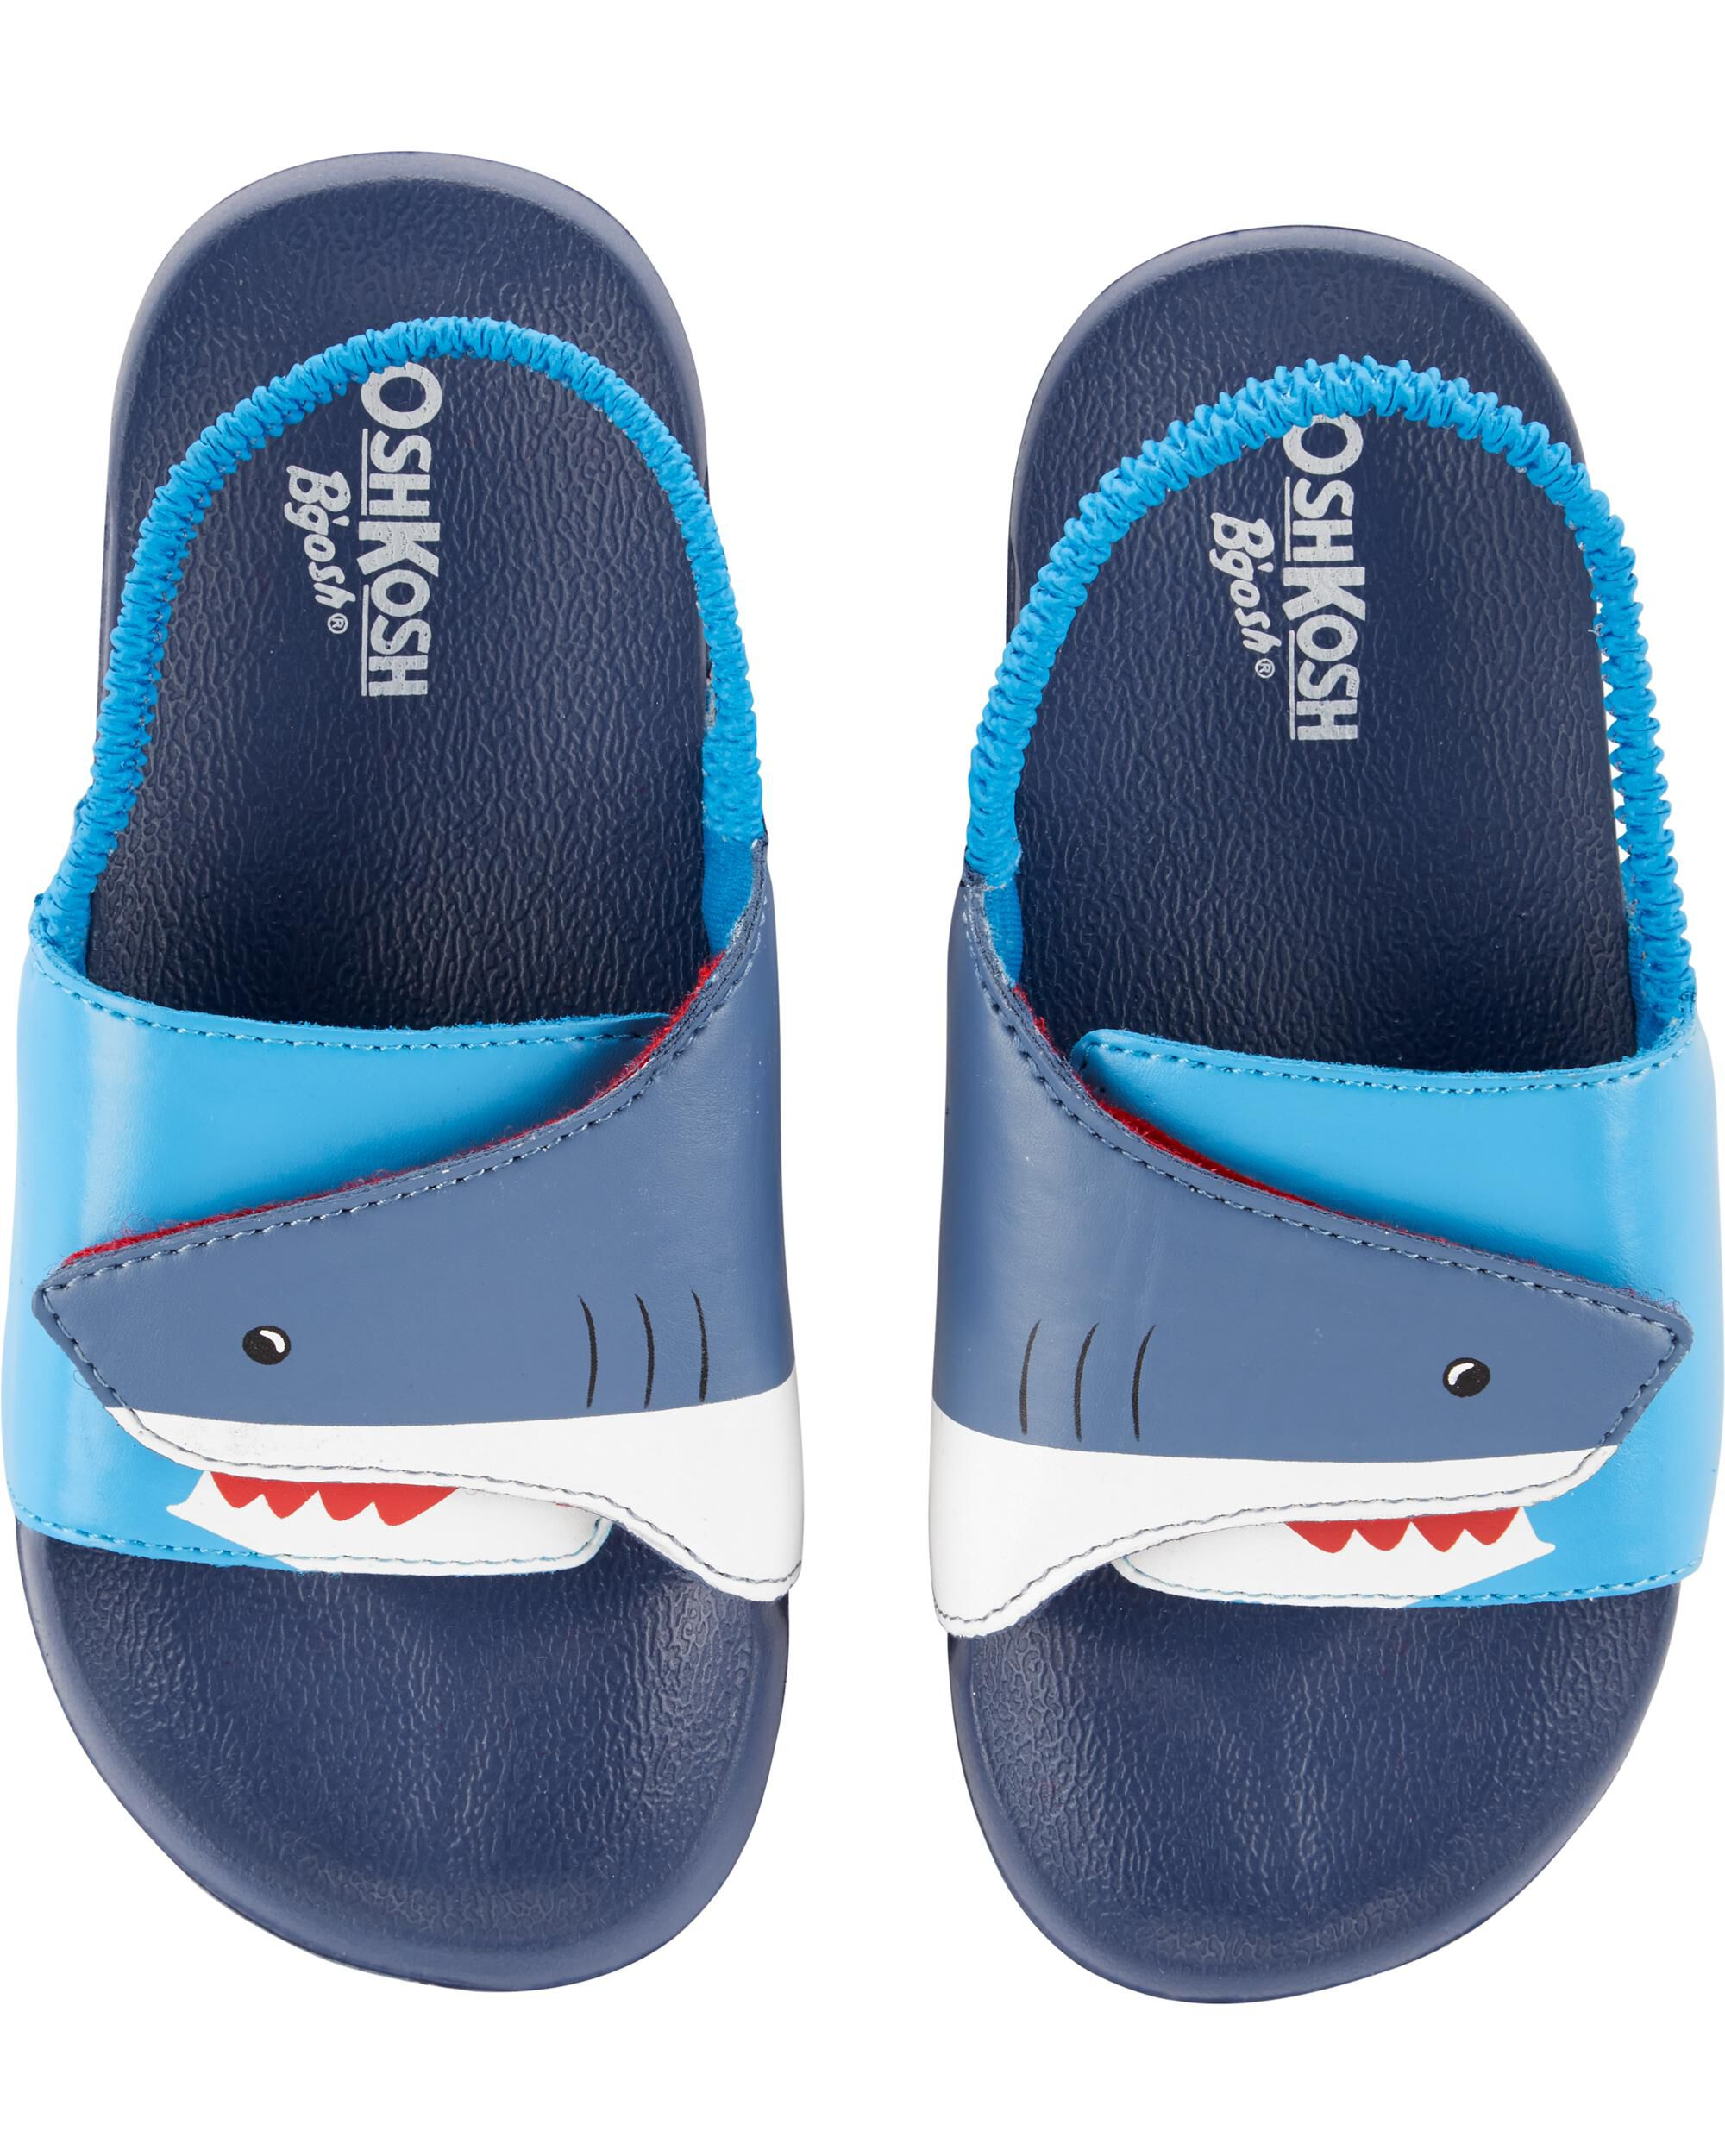 c9435590124e OshKosh Shark Slide Sandals ...